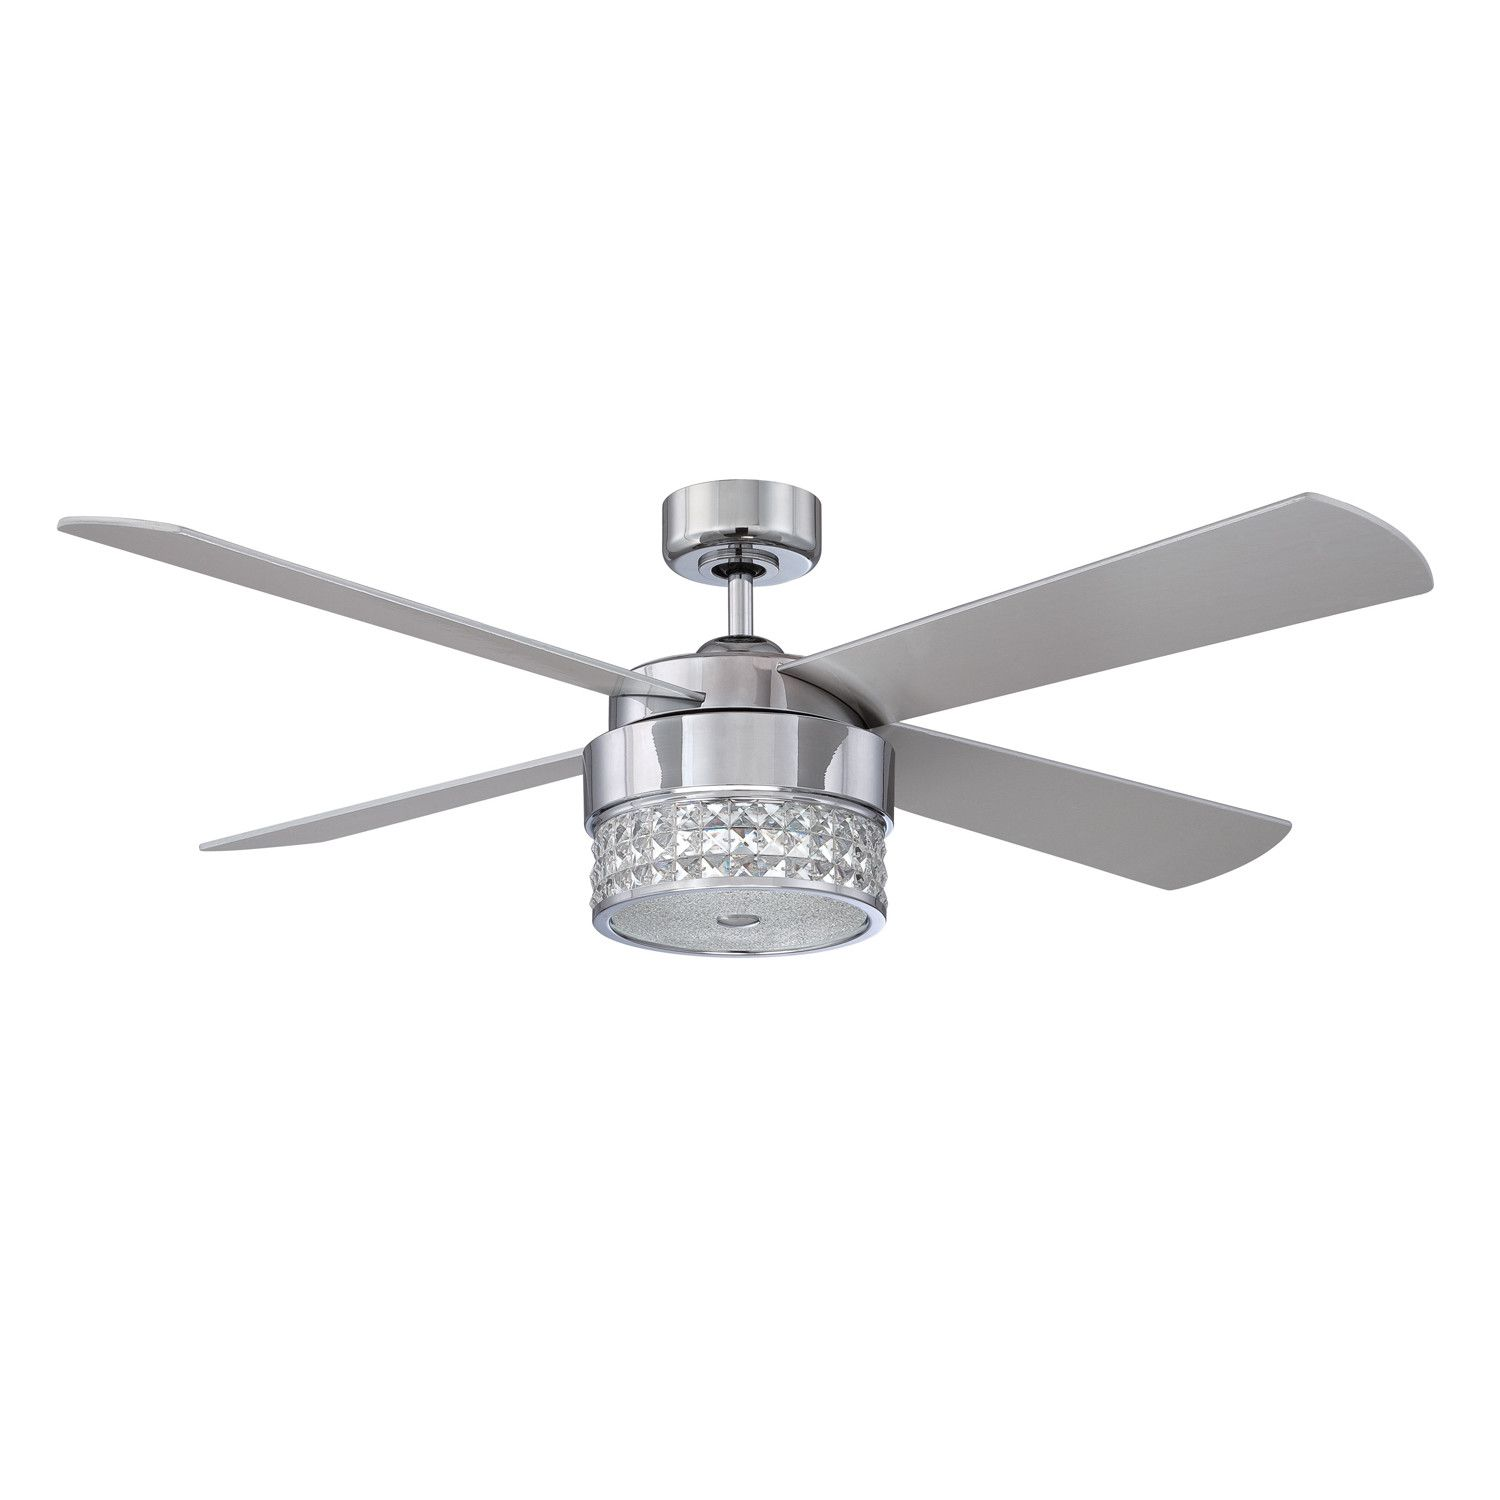 "Kendal Lighting 52"" Celestra 4 Blade Celling Fan with Wall Remote"